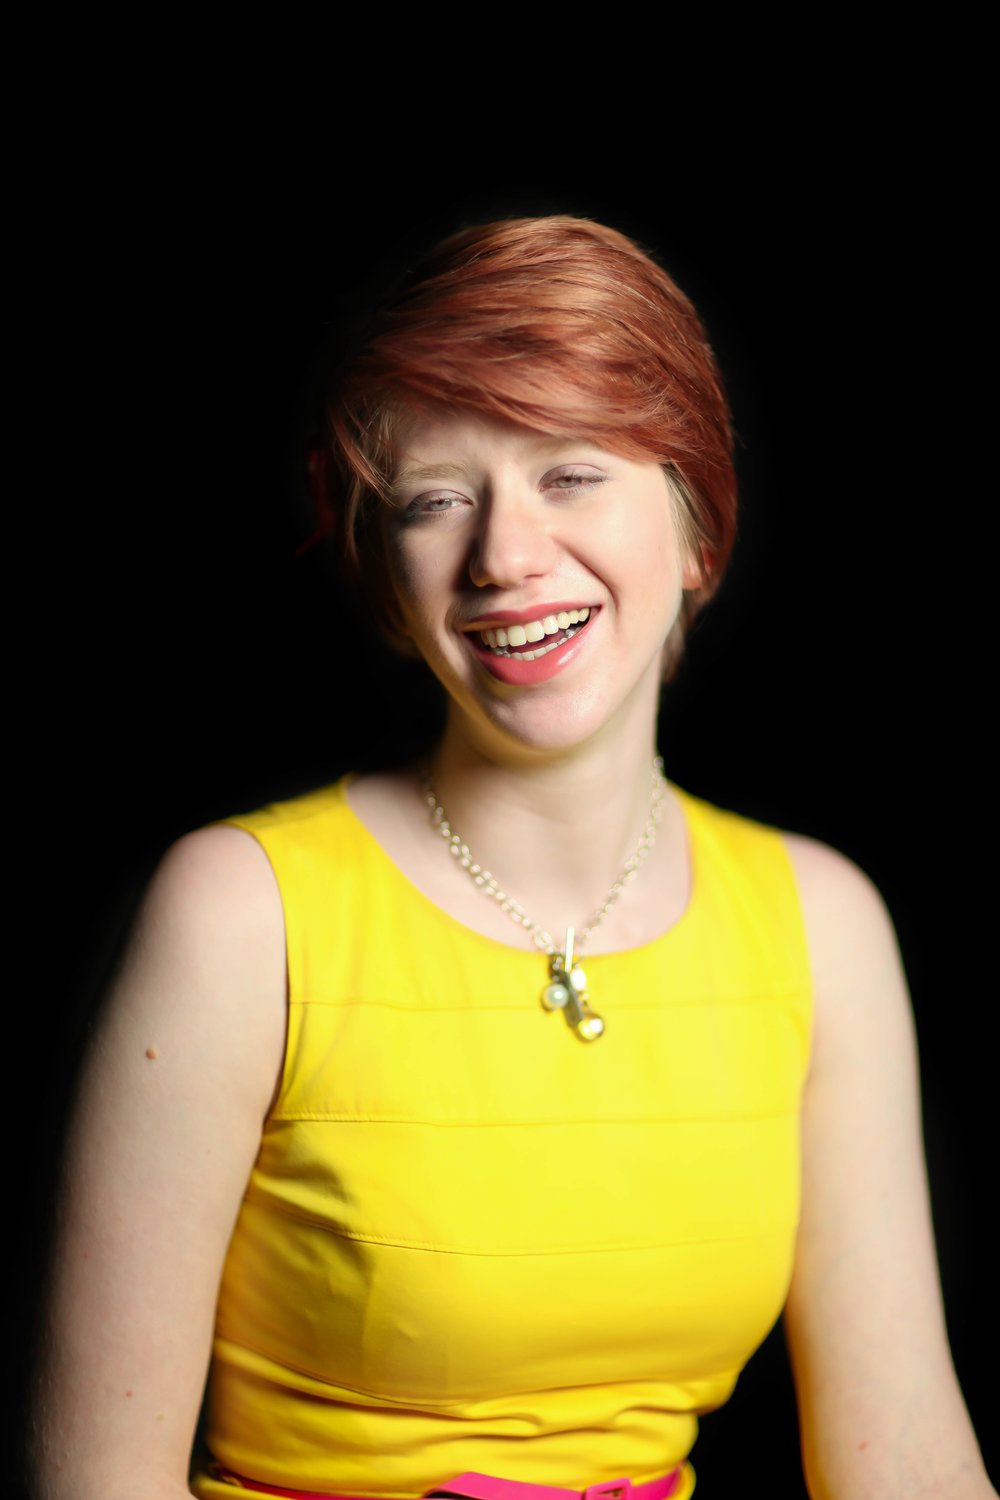 """Cassandra's parents are from Puerto Rico and moved to the mainland United States when her father was recruited to work at the Air Force base in Dayton, Ohio. She is a Computer Science & Engineering major at Ohio State. Cassandra was born with the condition Albinism, which she attributes to influencing her experience in the American and Puerto Rican communities.    """"'It's hard having an obvious disability because people do make assumptions and people do get kind of weird about it. [They say things like] """"OMG you can't see as normally as everyone else."""" But that is just part of it. It is weird because I speak Spanish, I am fluent in Spanish, but even when I go to Puerto Rico, people look at me really weird and I know they are talking about me because I can understand them. So, sometimes I just slip in a couple words and they are like """"Oh no, she knows what I am saying.""""  People just assume that I am white, because I look white, because of the pigmentation of my skin, so it's really weird because I haven't really faced any racial or ethnic discrimination. So while my brother was bullied in middle school, people were telling him to go back to his country, which is ironic just because we're already there. We've (Puerto Ricans) been US citizens for years and years and years. That really made him feel isolated, which is why I think he looked for that community, but I never had that [experience] because other white people also assumed I was white.  Then again, I have never been able to connect with a lot of people based on my heritage. I have my family, of course, and a lot of people with my same condition, we talk about that. Other people from India, different countries, we all get it-- we don't look like the people of our skin color and then they (people) kind of make assumptions. It's really sad because I would like to connect with people of my heritage, but it's what is ingrained in people's minds, that you have to look a certain way to be Hispanic.""""'"""